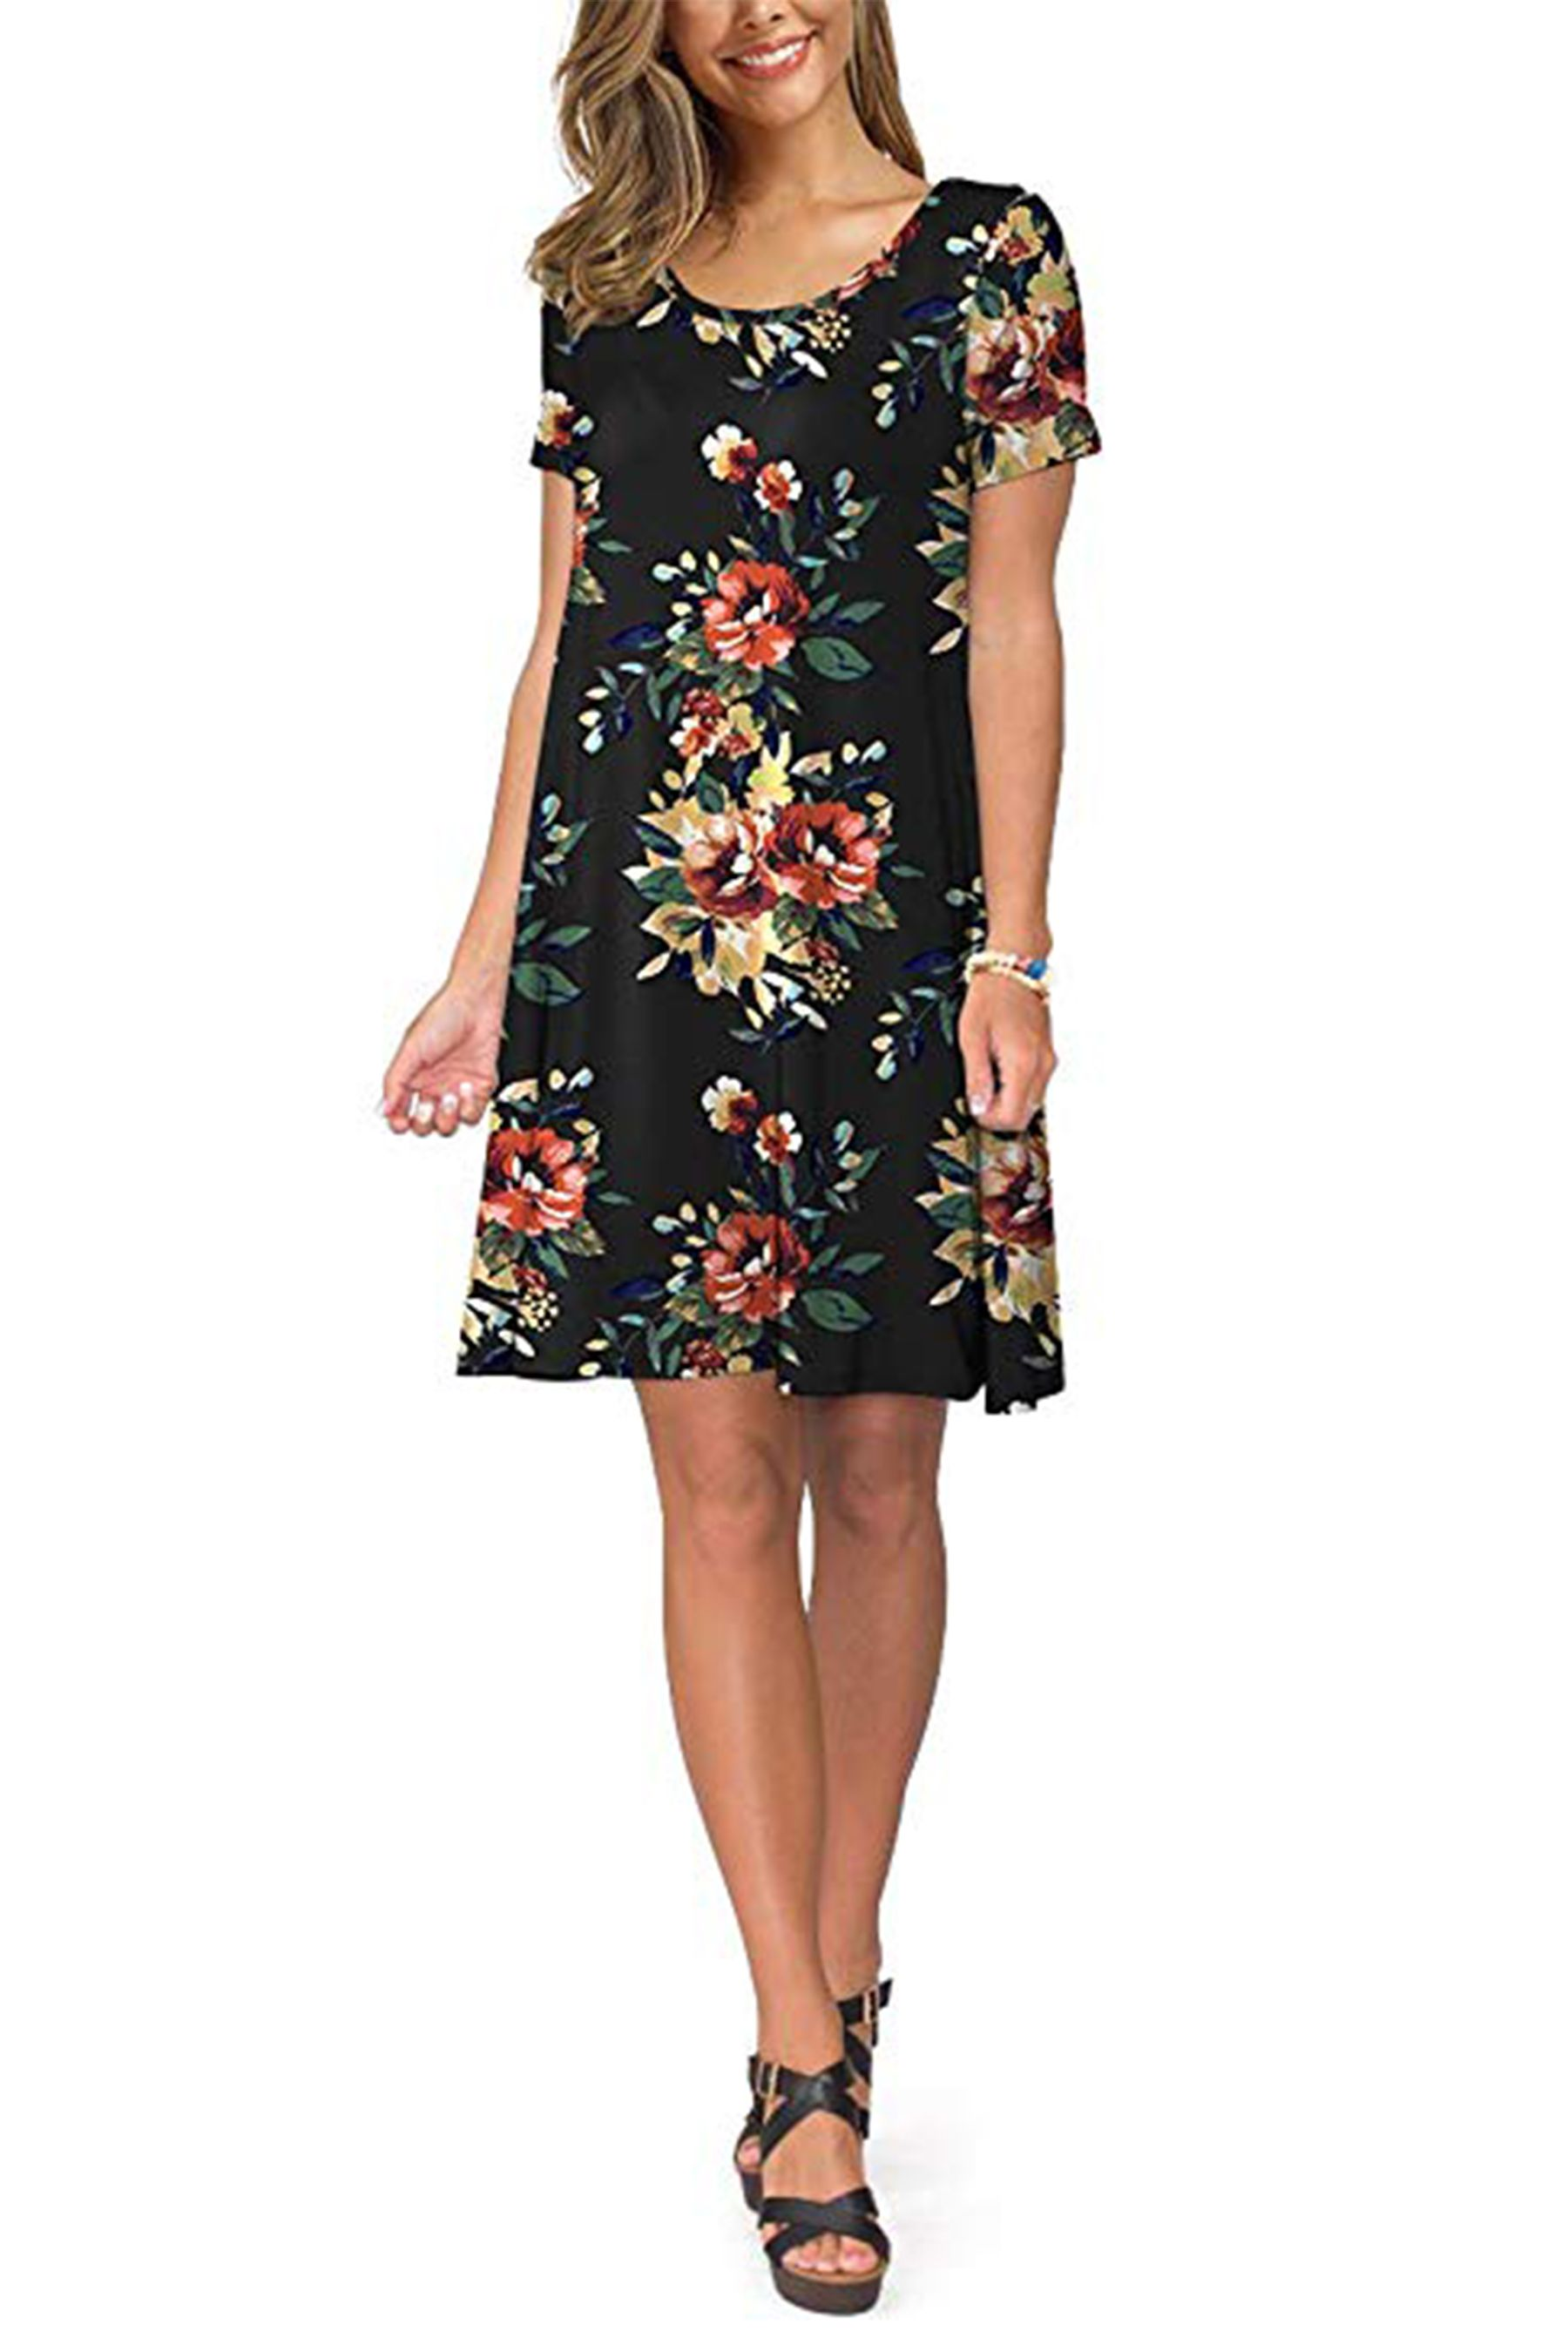 10 Best Selling Dresses That Amazon Shoppers Can T Stop Buying All Under 40 Summer Dresses For Women Sleeved Swing Dress Casual Short Sleeve Dress [ 2700 x 1800 Pixel ]